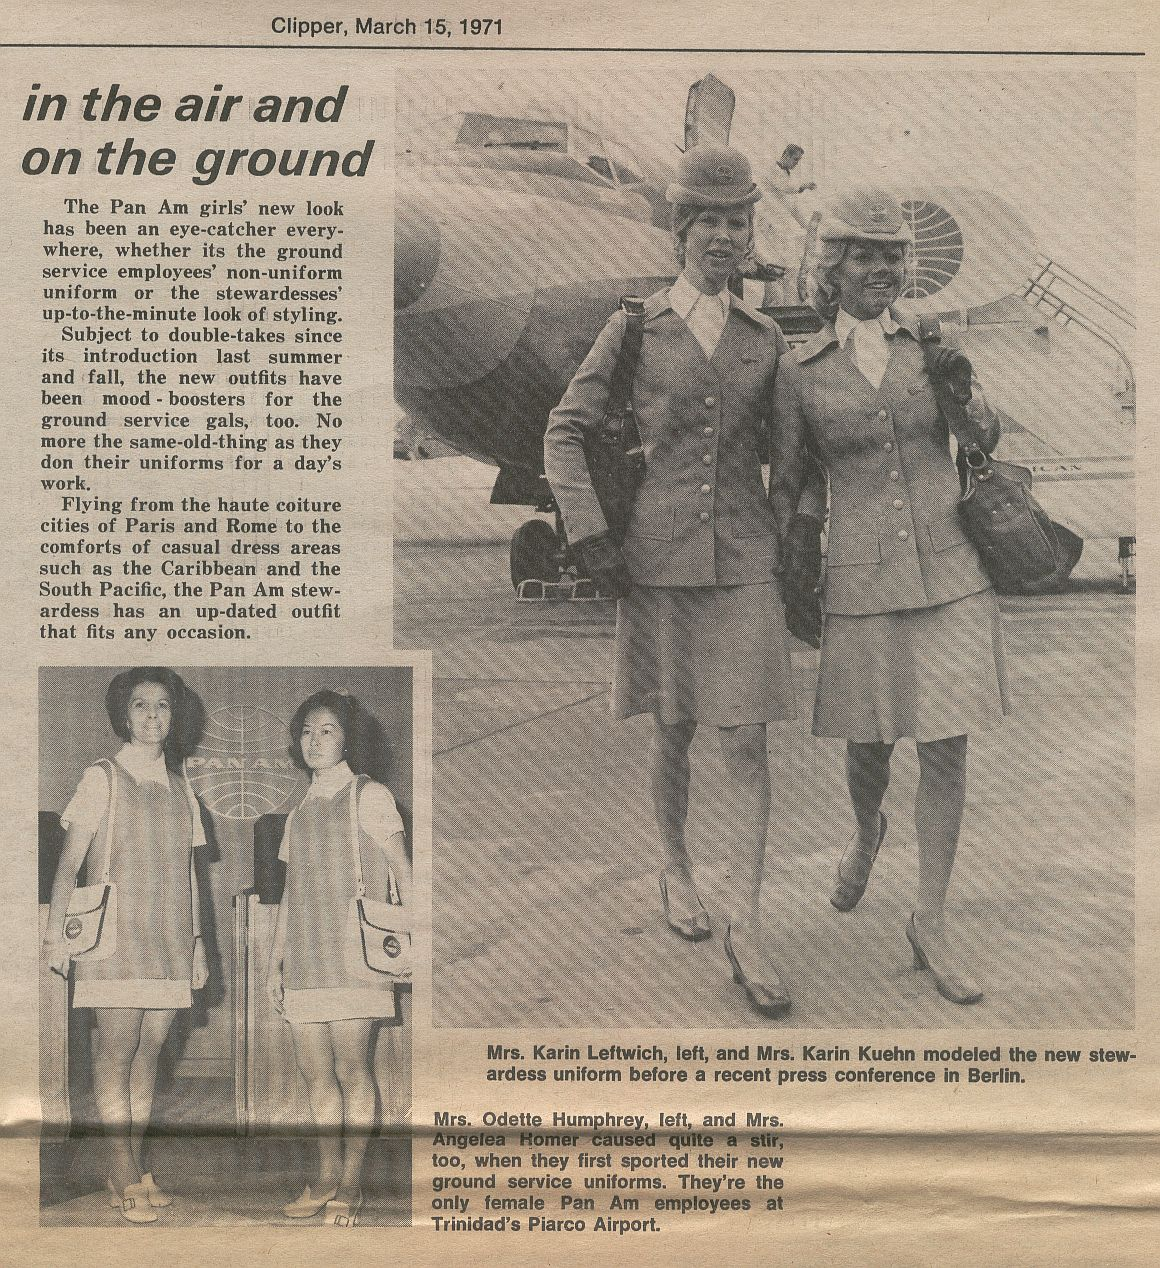 1971 An Article from an employee publication shows both in-flight and ground uniforms introduced in 1970.